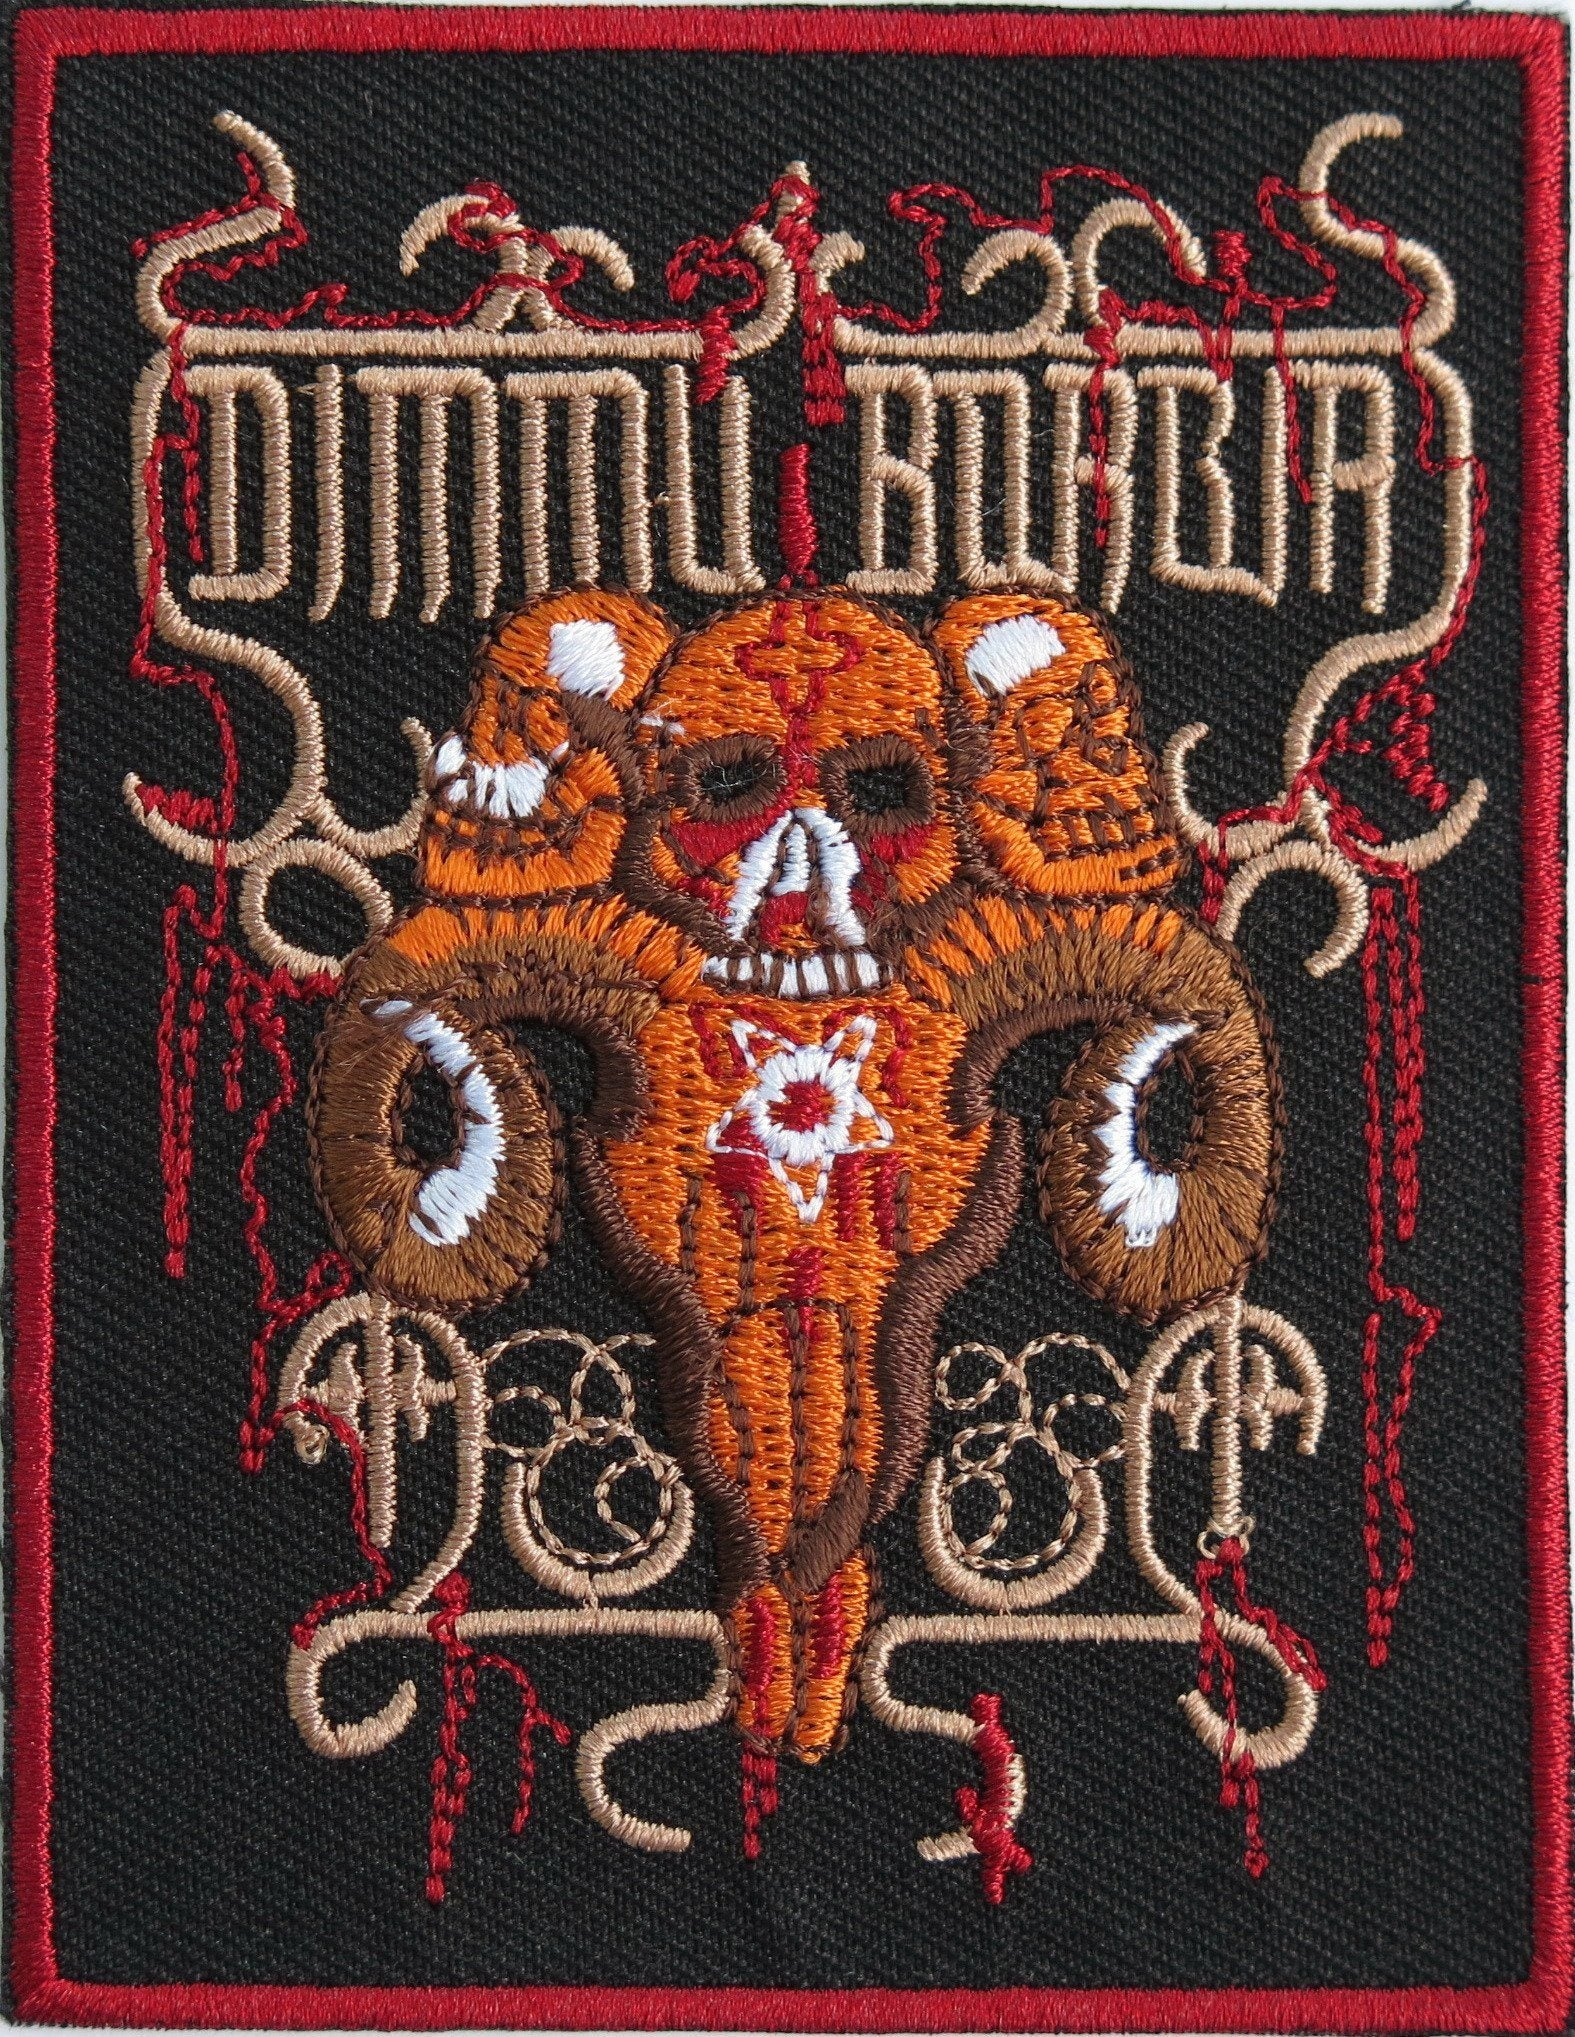 "DIMMU BORGIR Baphomet Skull Iron On Embroidered Patch 3.8""/9.8cm - A Patch E Store"